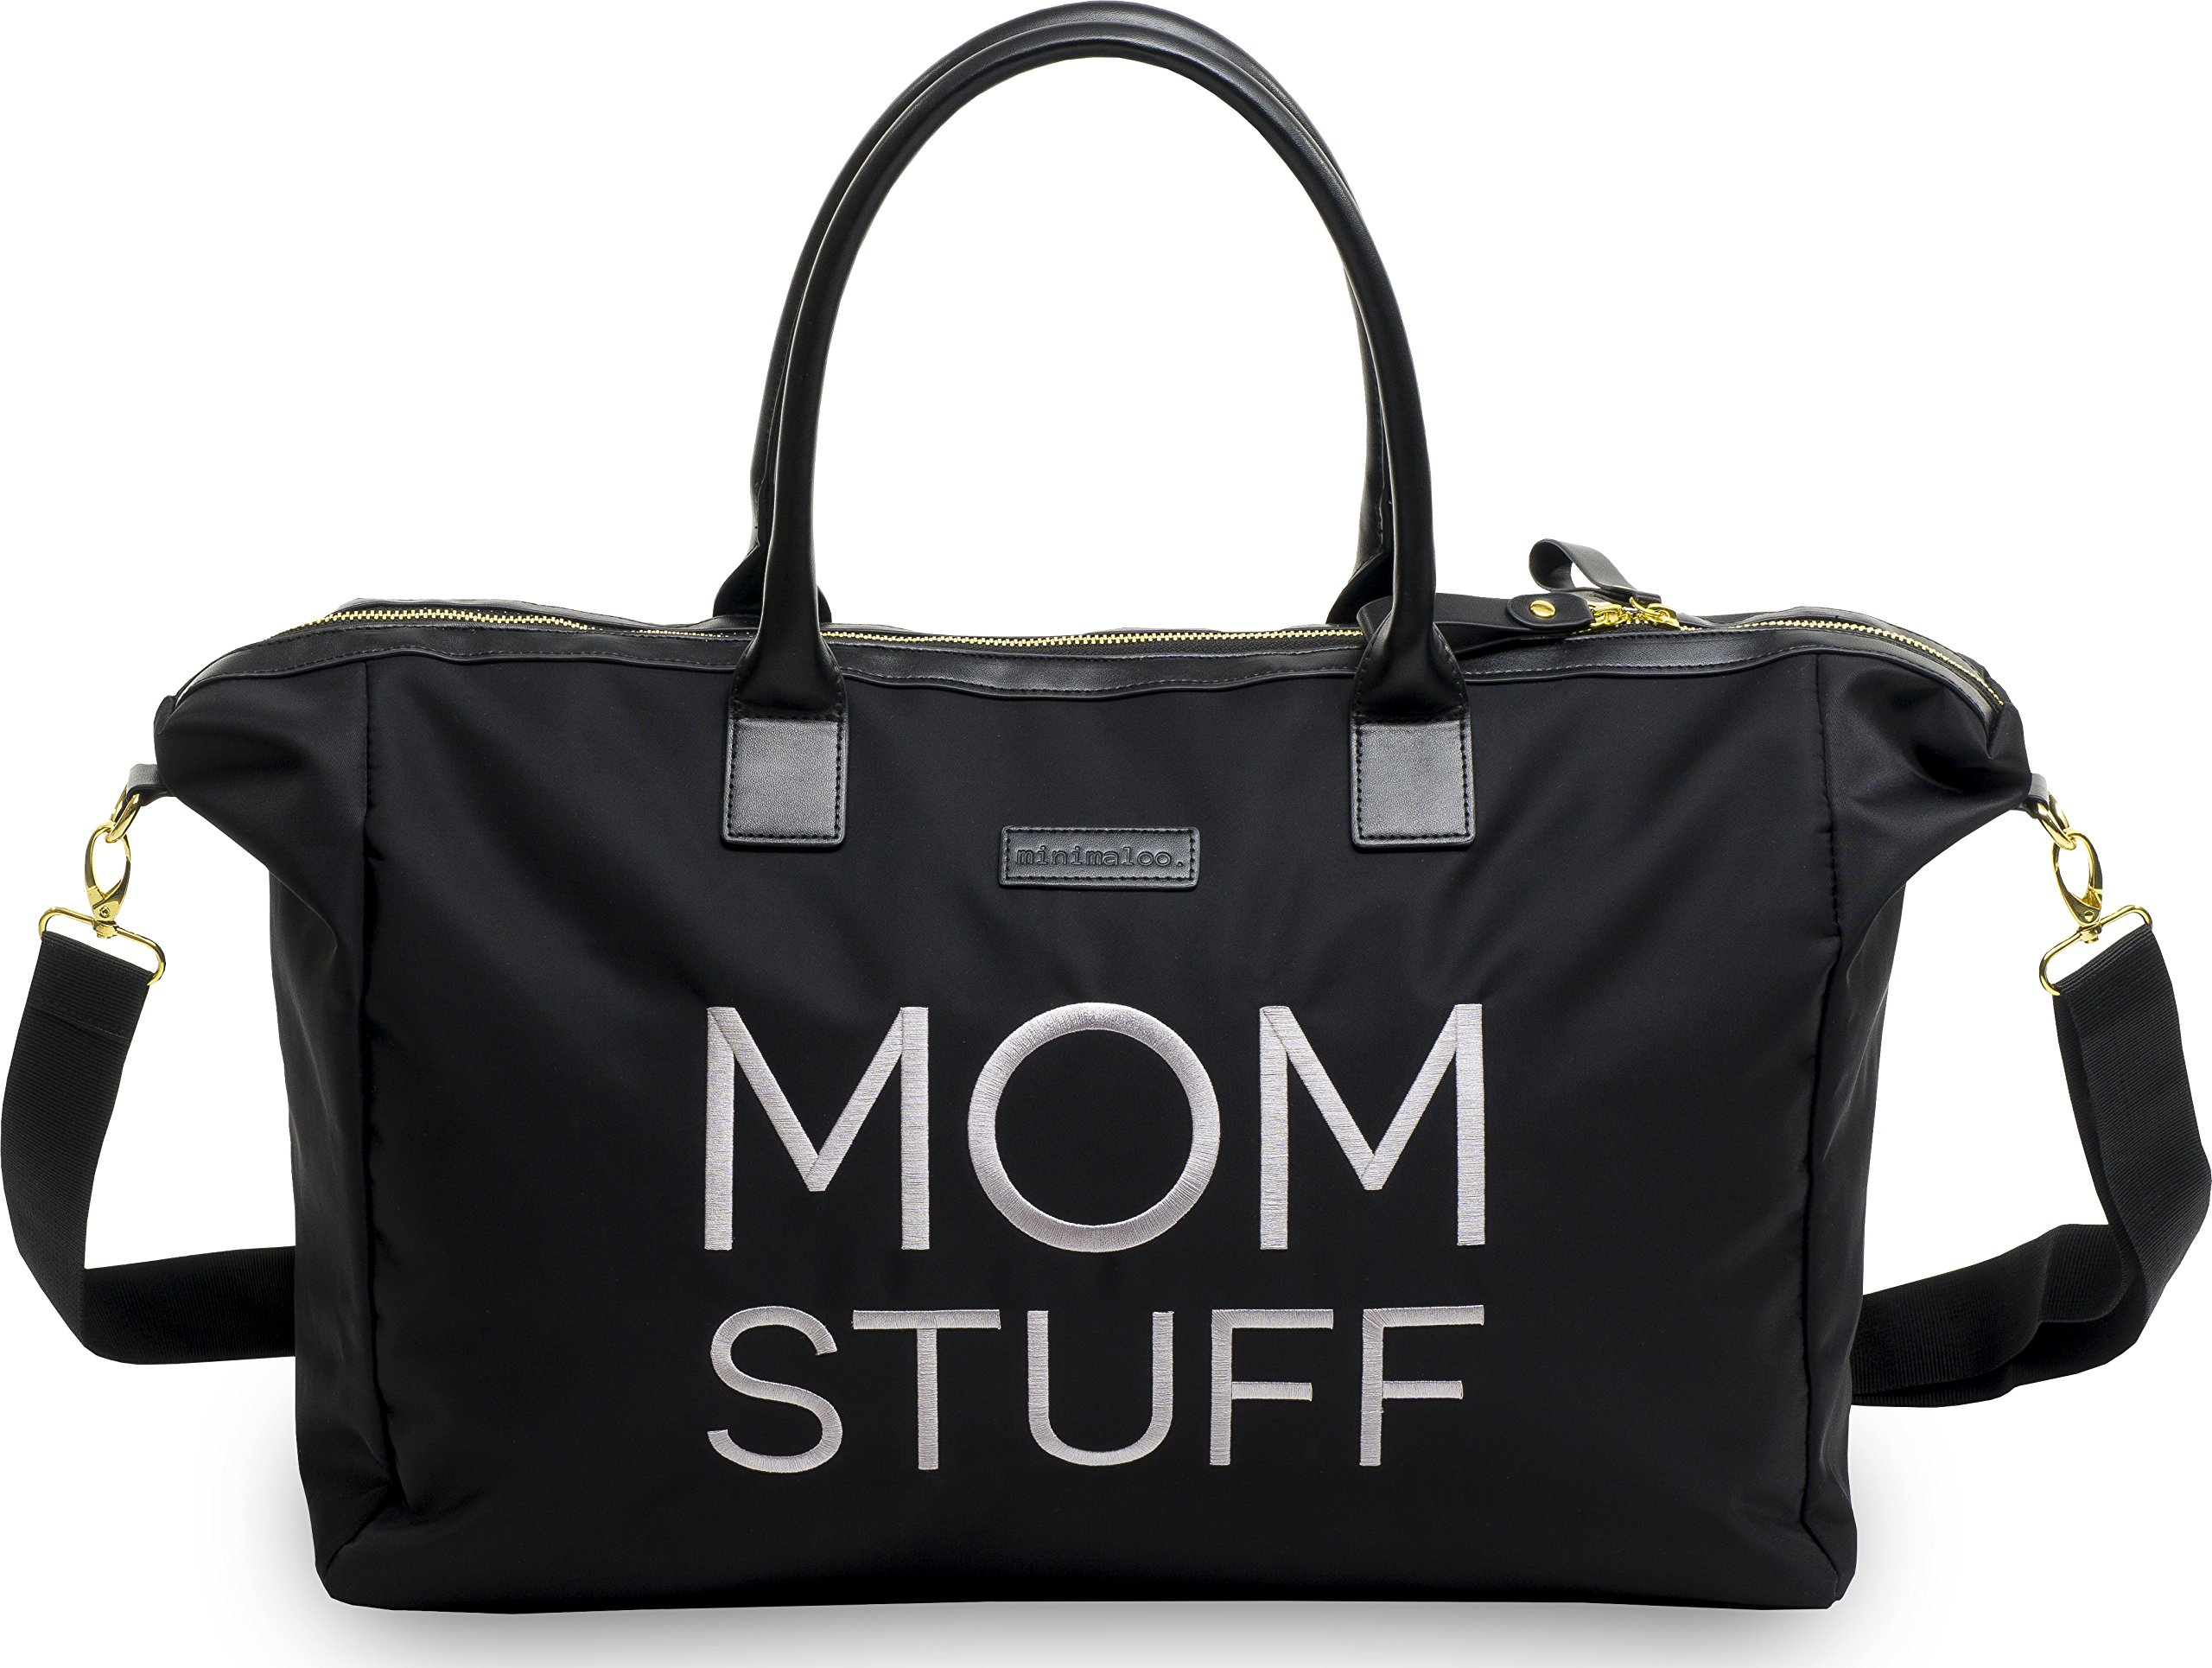 Minimaloo Mom Hospital Bag - Canvas Weekend Tote Bag - Maternity Hospital Bag for Labor and delivery